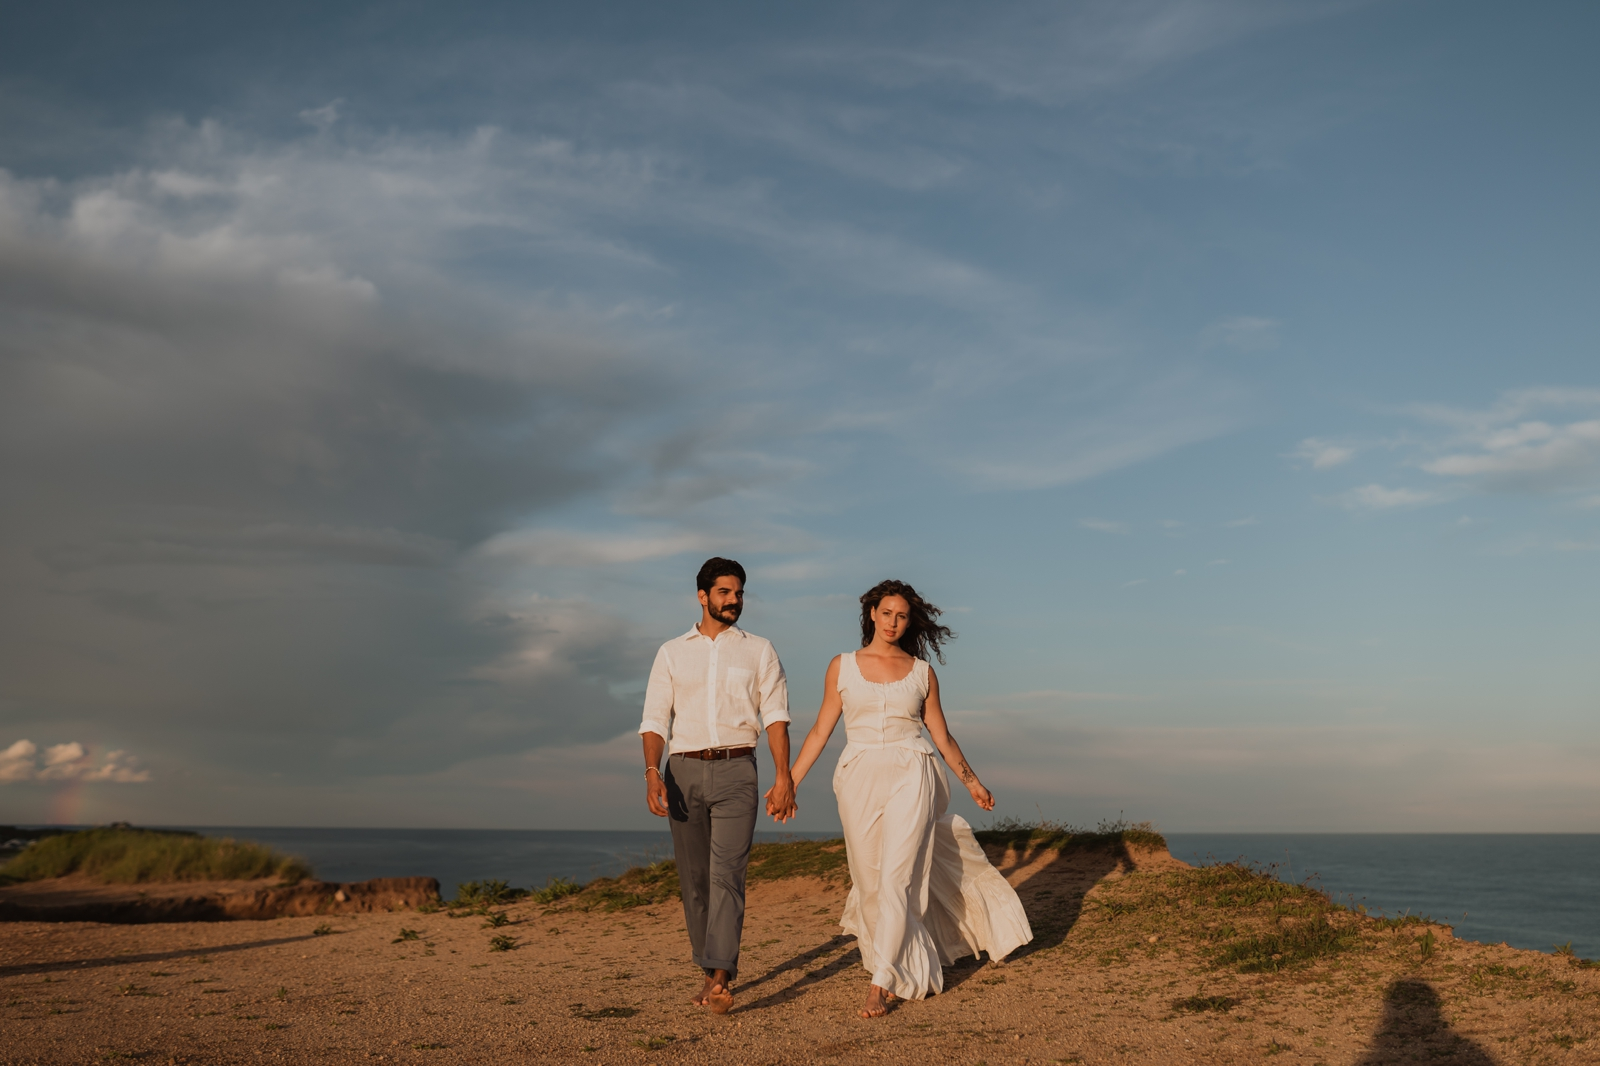 JJP_Nikki & Bud_Shadmoor_Montauk_NY_Cliff Engagement Session70.jpg_blog.jpg